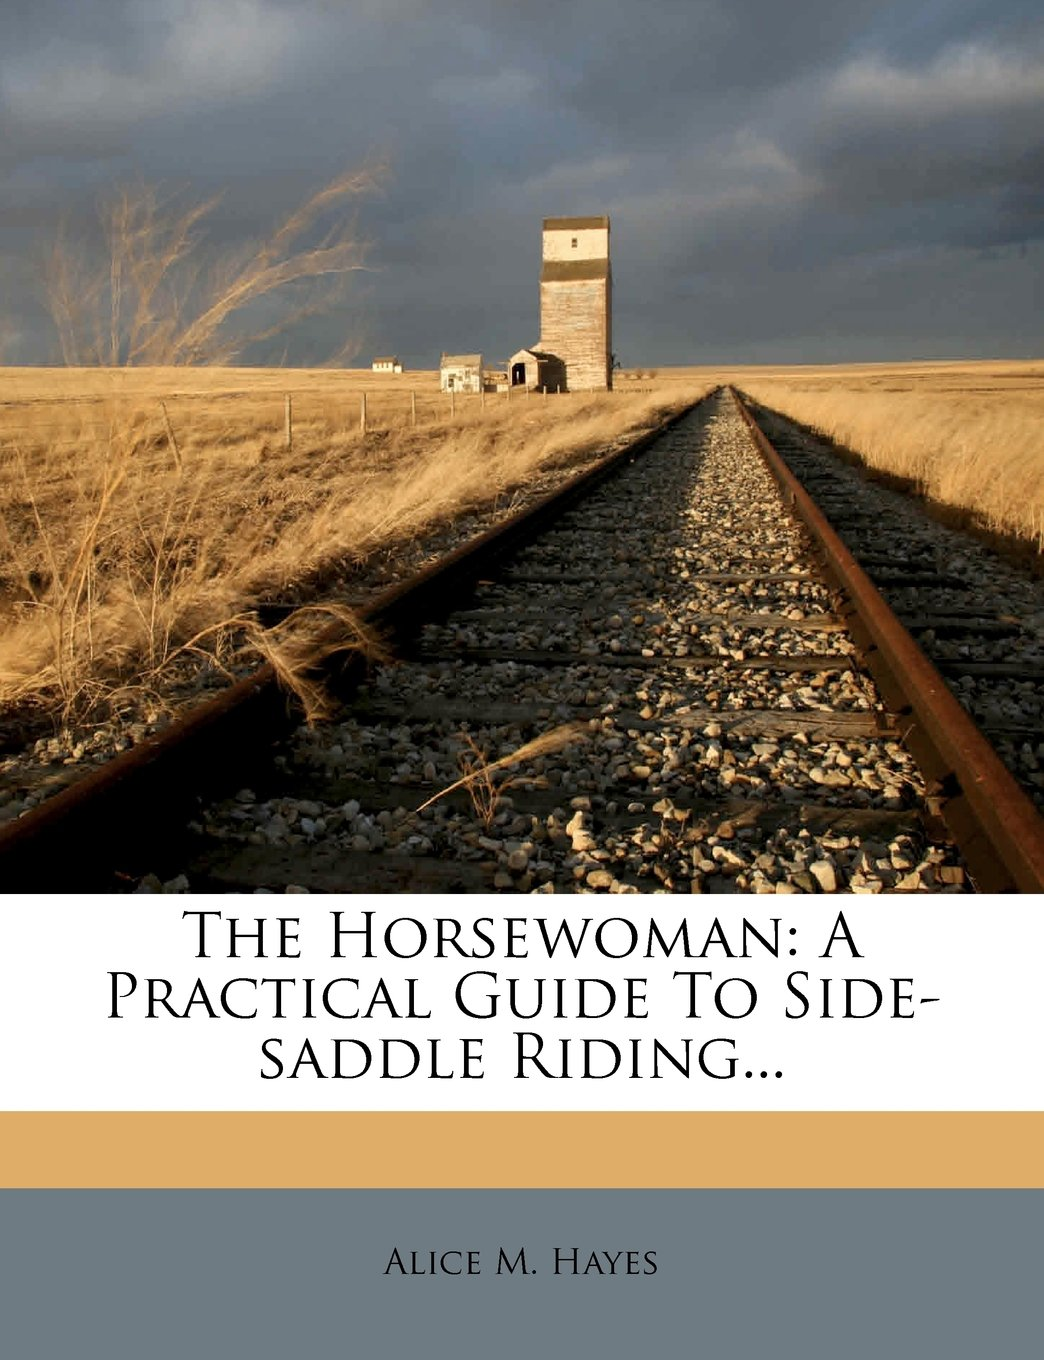 Download The Horsewoman: A Practical Guide To Side-saddle Riding... pdf